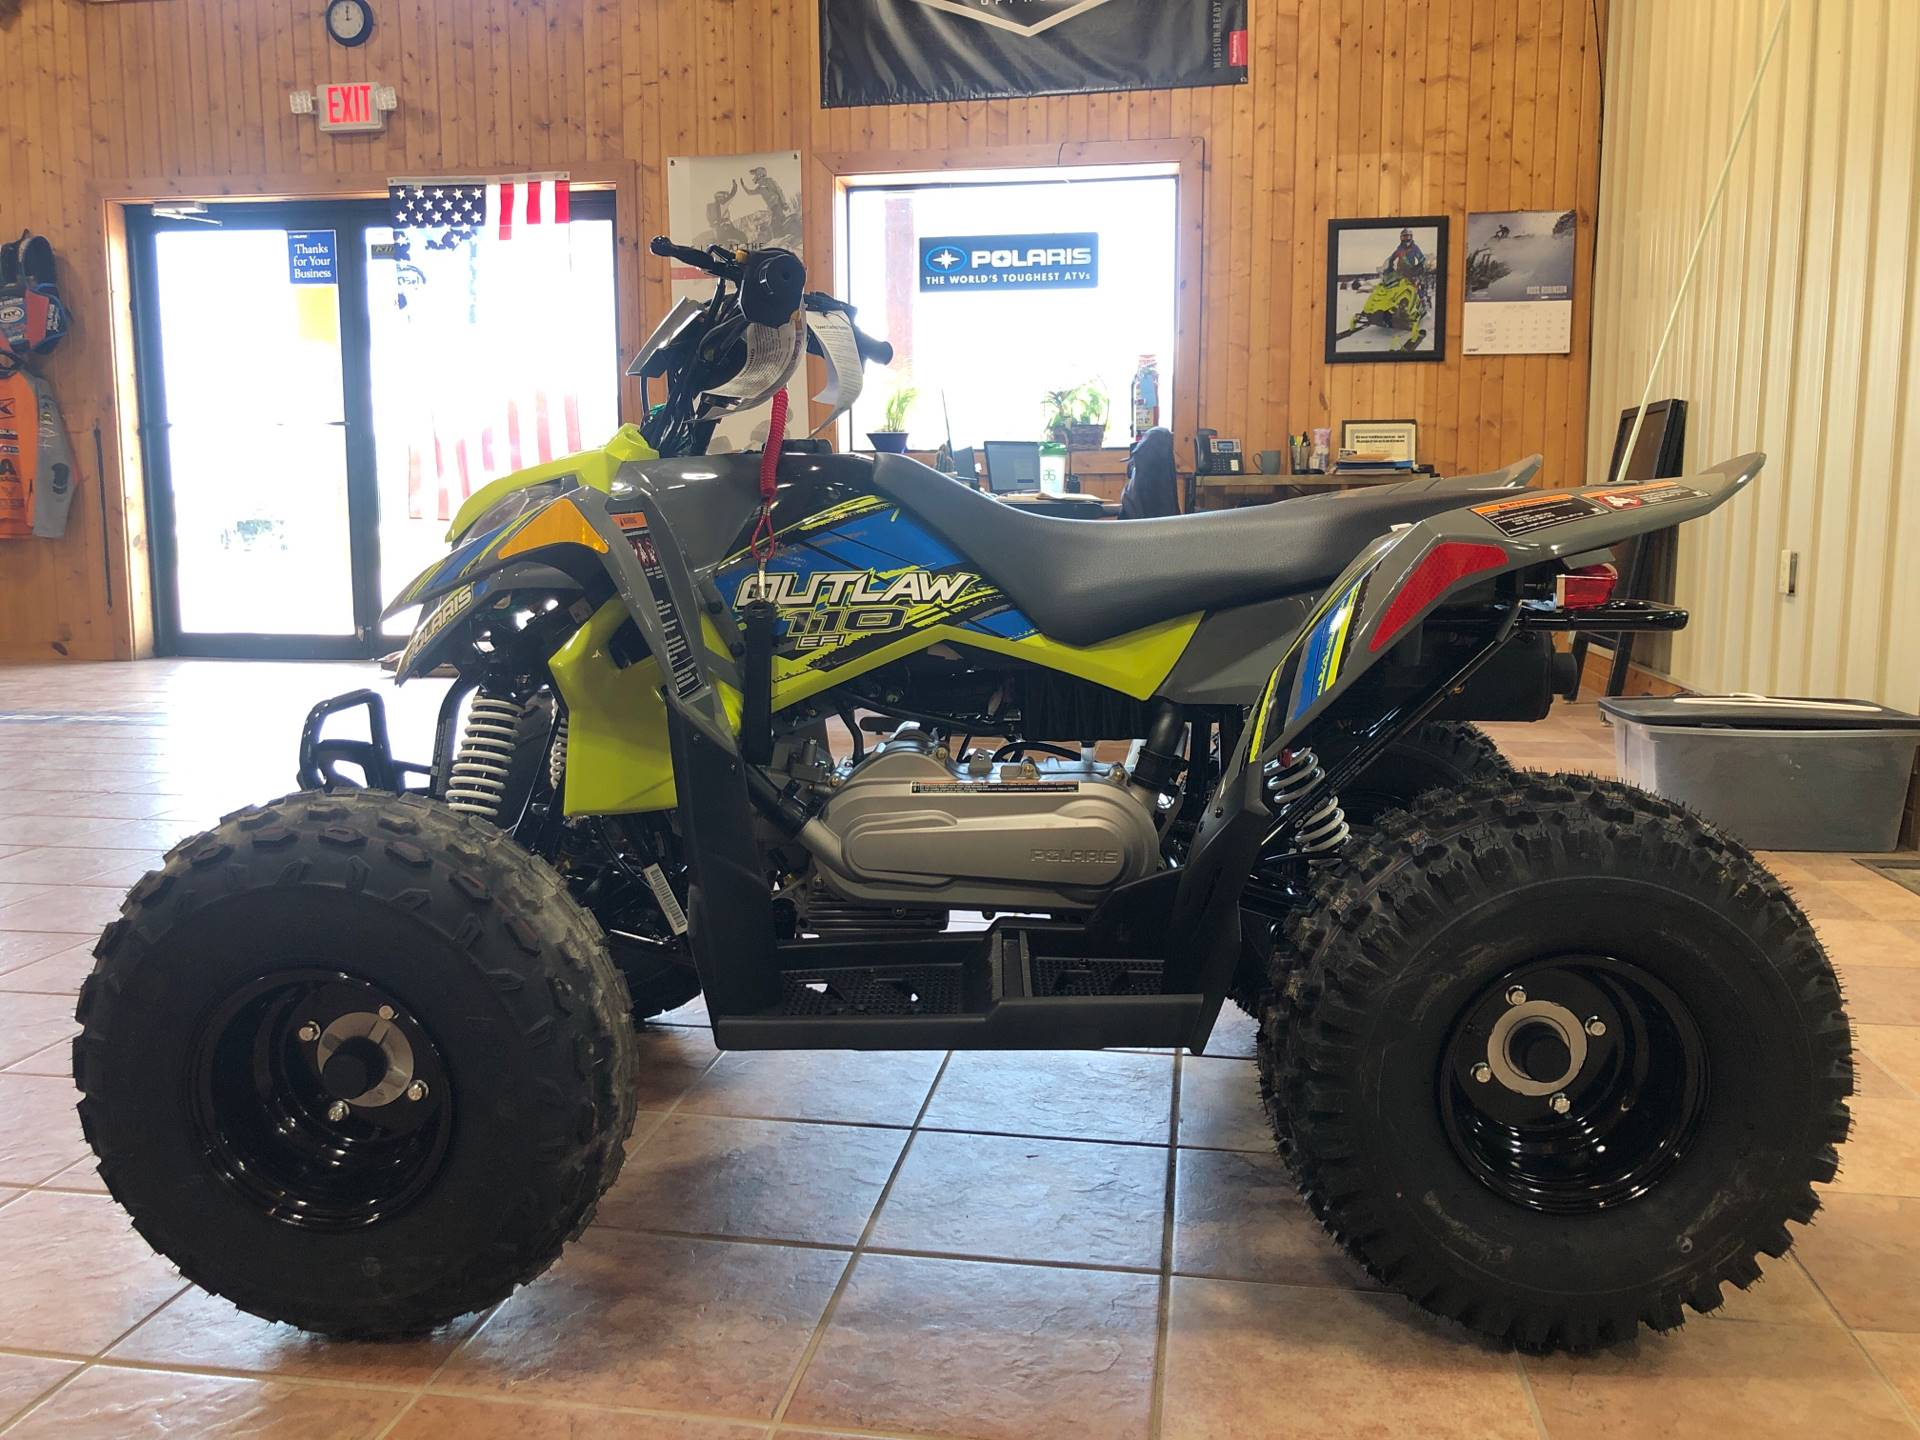 2020 Polaris Outlaw 110 in Elkhorn, Wisconsin - Photo 2